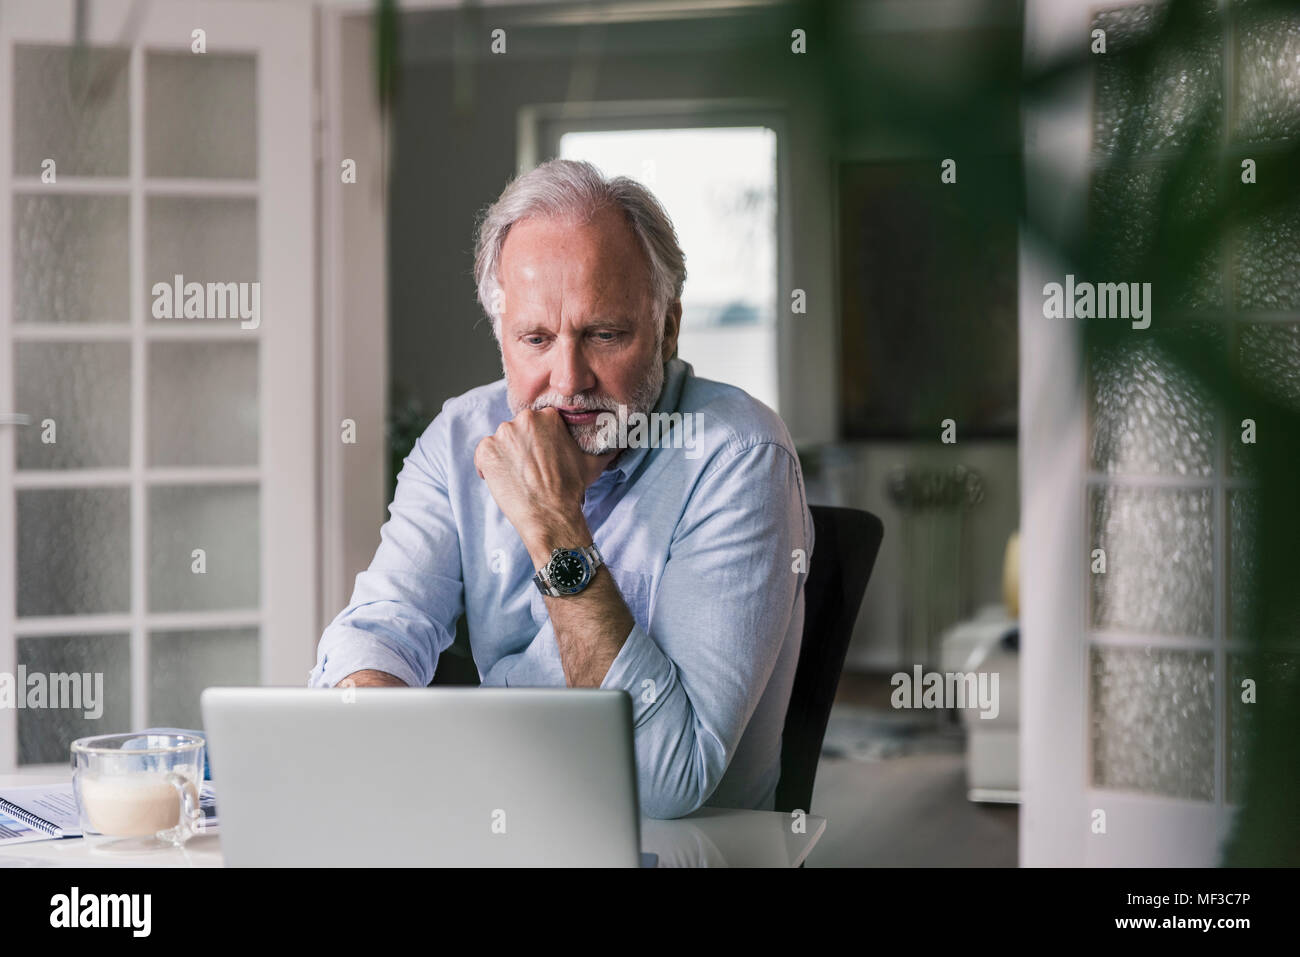 Portrait of mature man using laptop at home - Stock Image